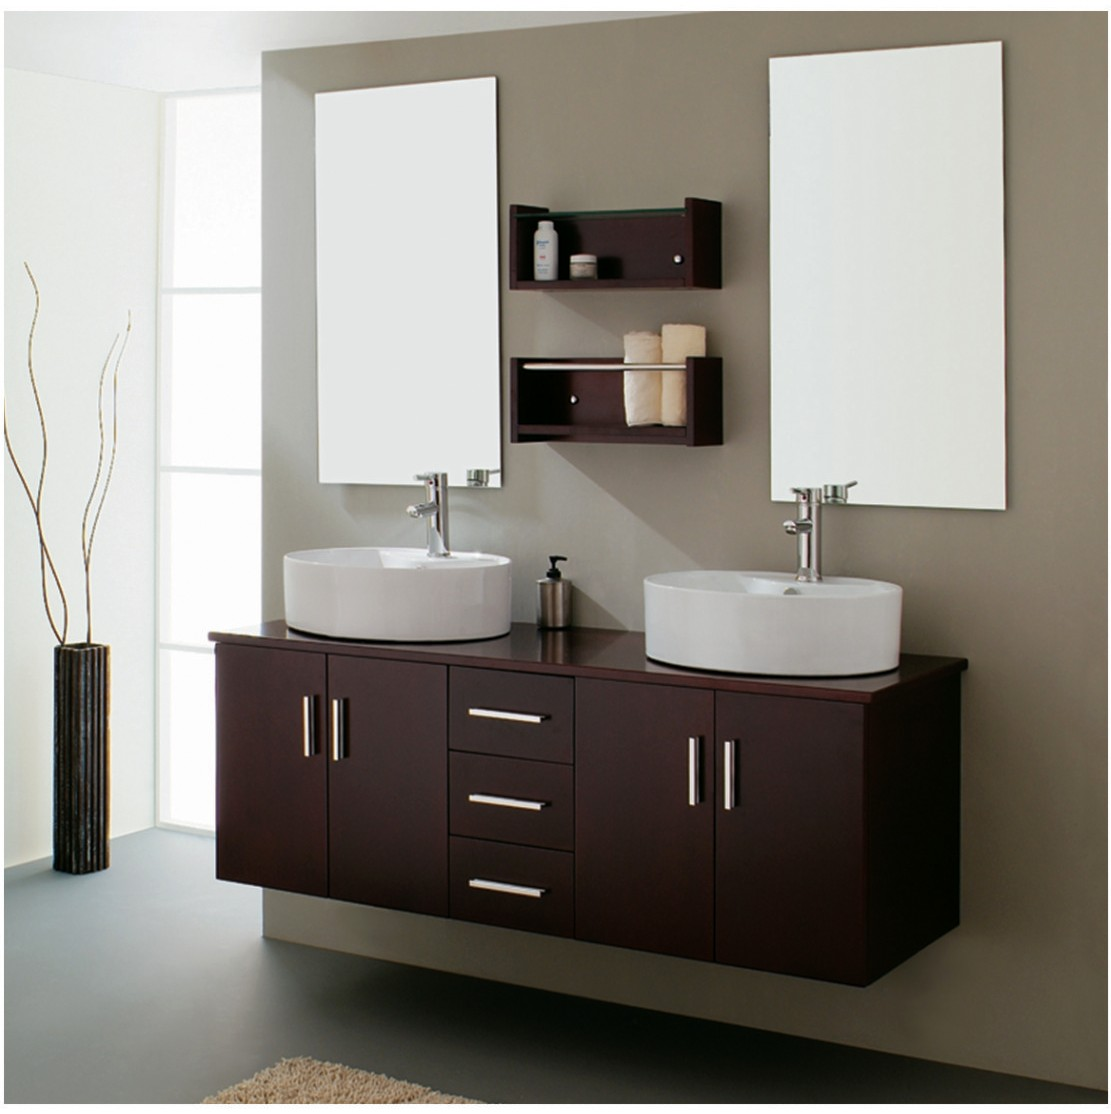 home bathroom furnishings photo - 2